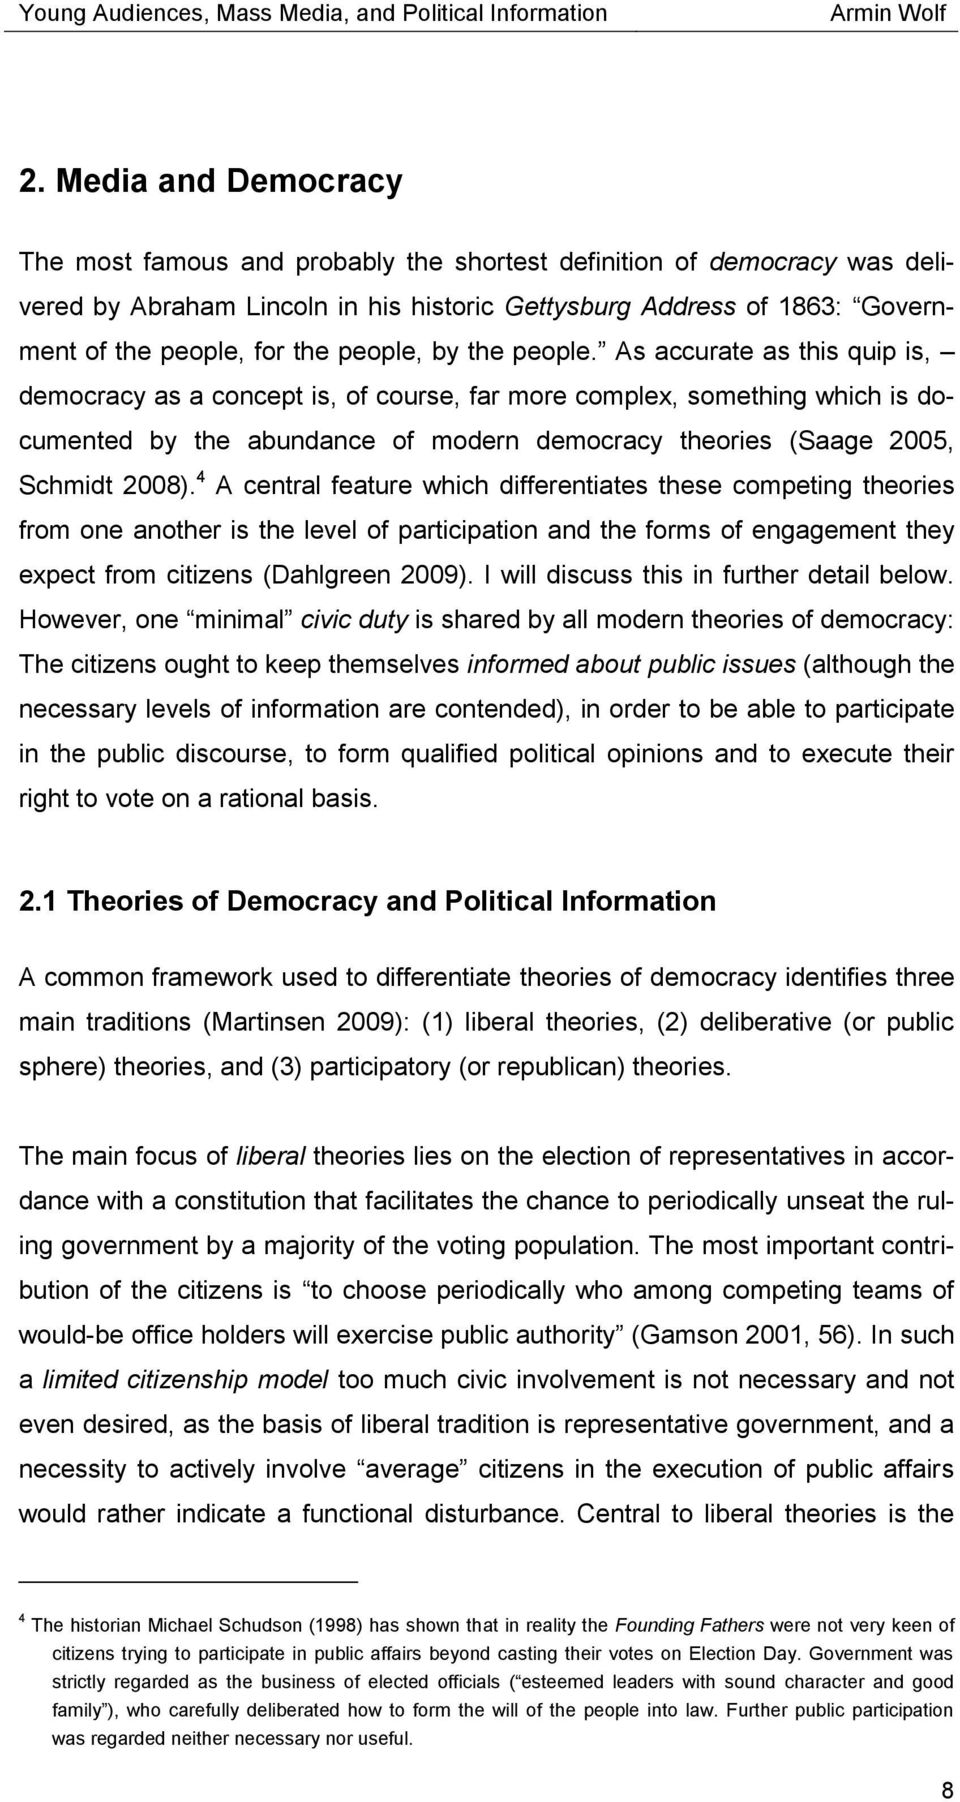 As accurate as this quip is, democracy as a concept is, of course, far more complex, something which is documented by the abundance of modern democracy theories (Saage 2005, Schmidt 2008).